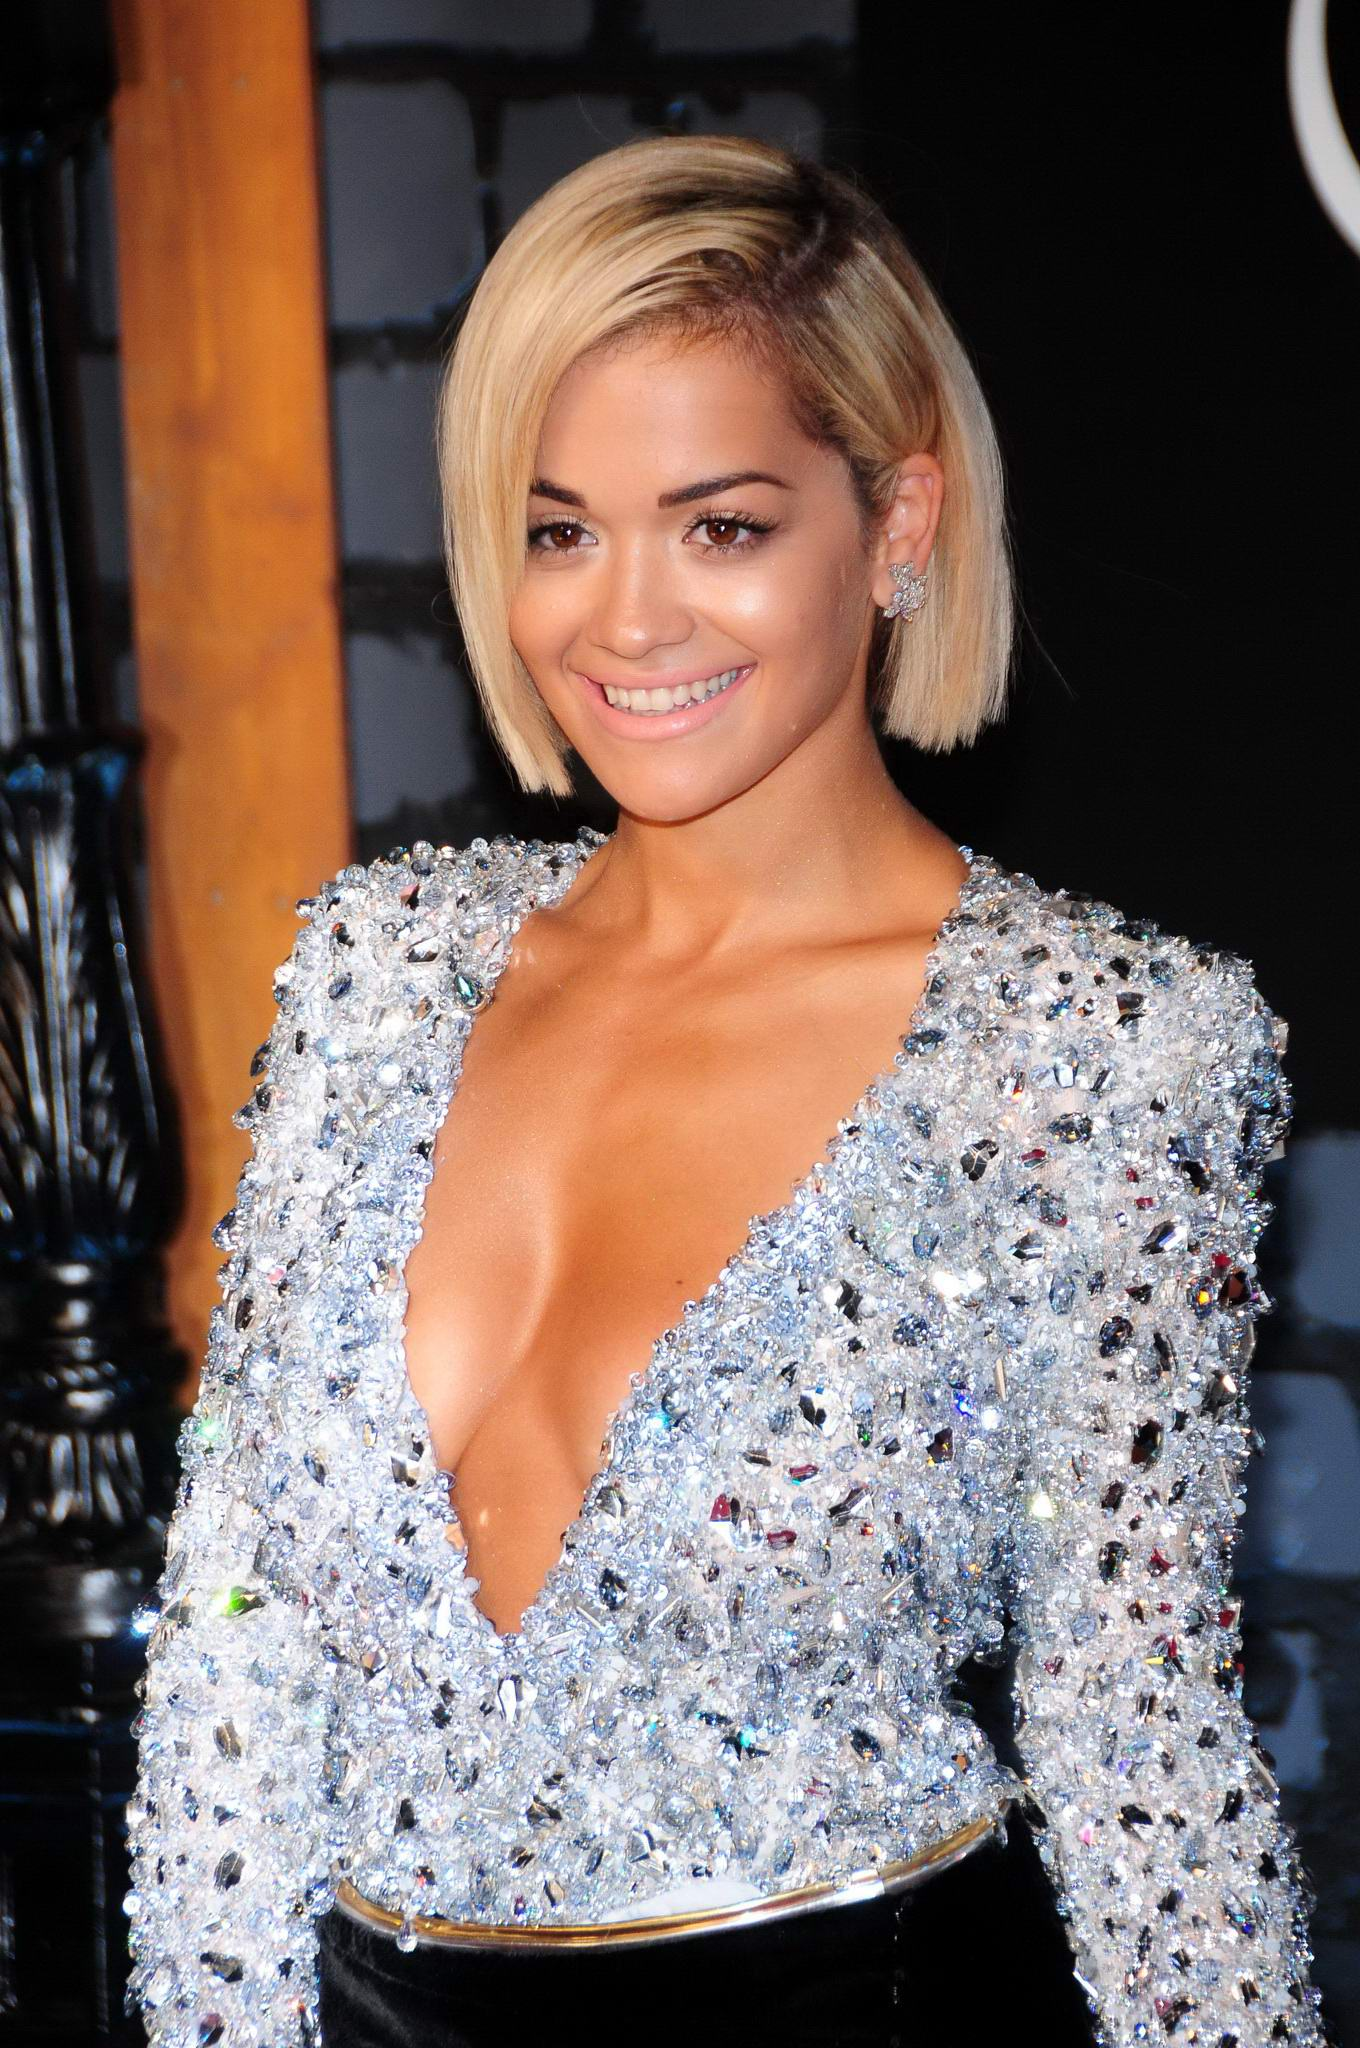 Rita ora huge cleavage 6